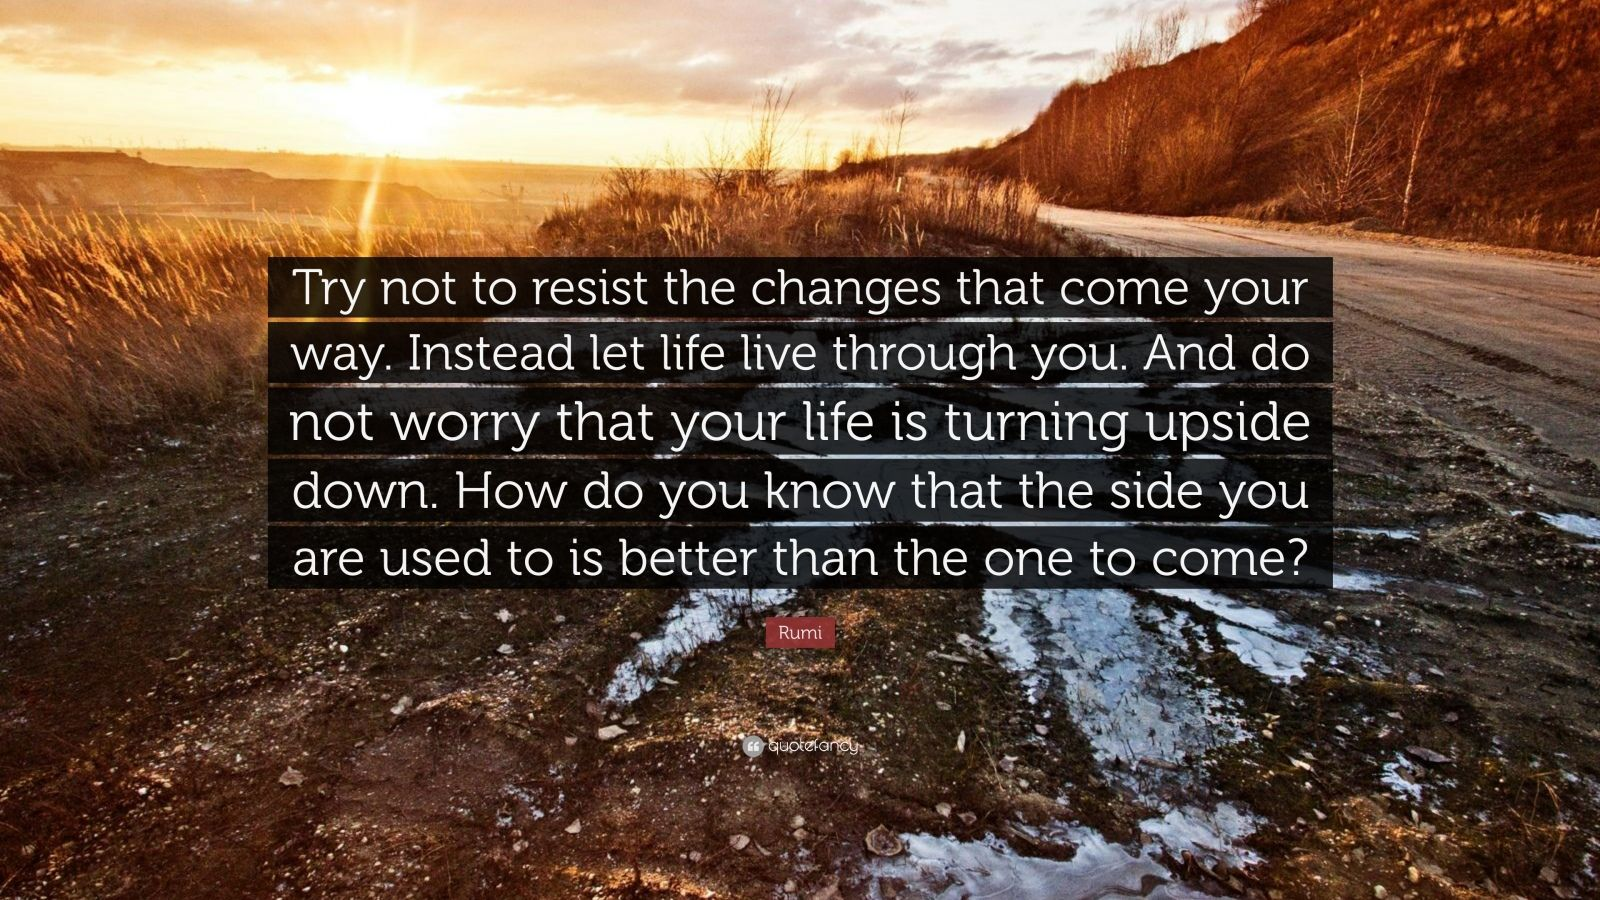 Into The Wild Quotes Wallpaper Rumi Quote Try Not To Resist The Changes That Come Your